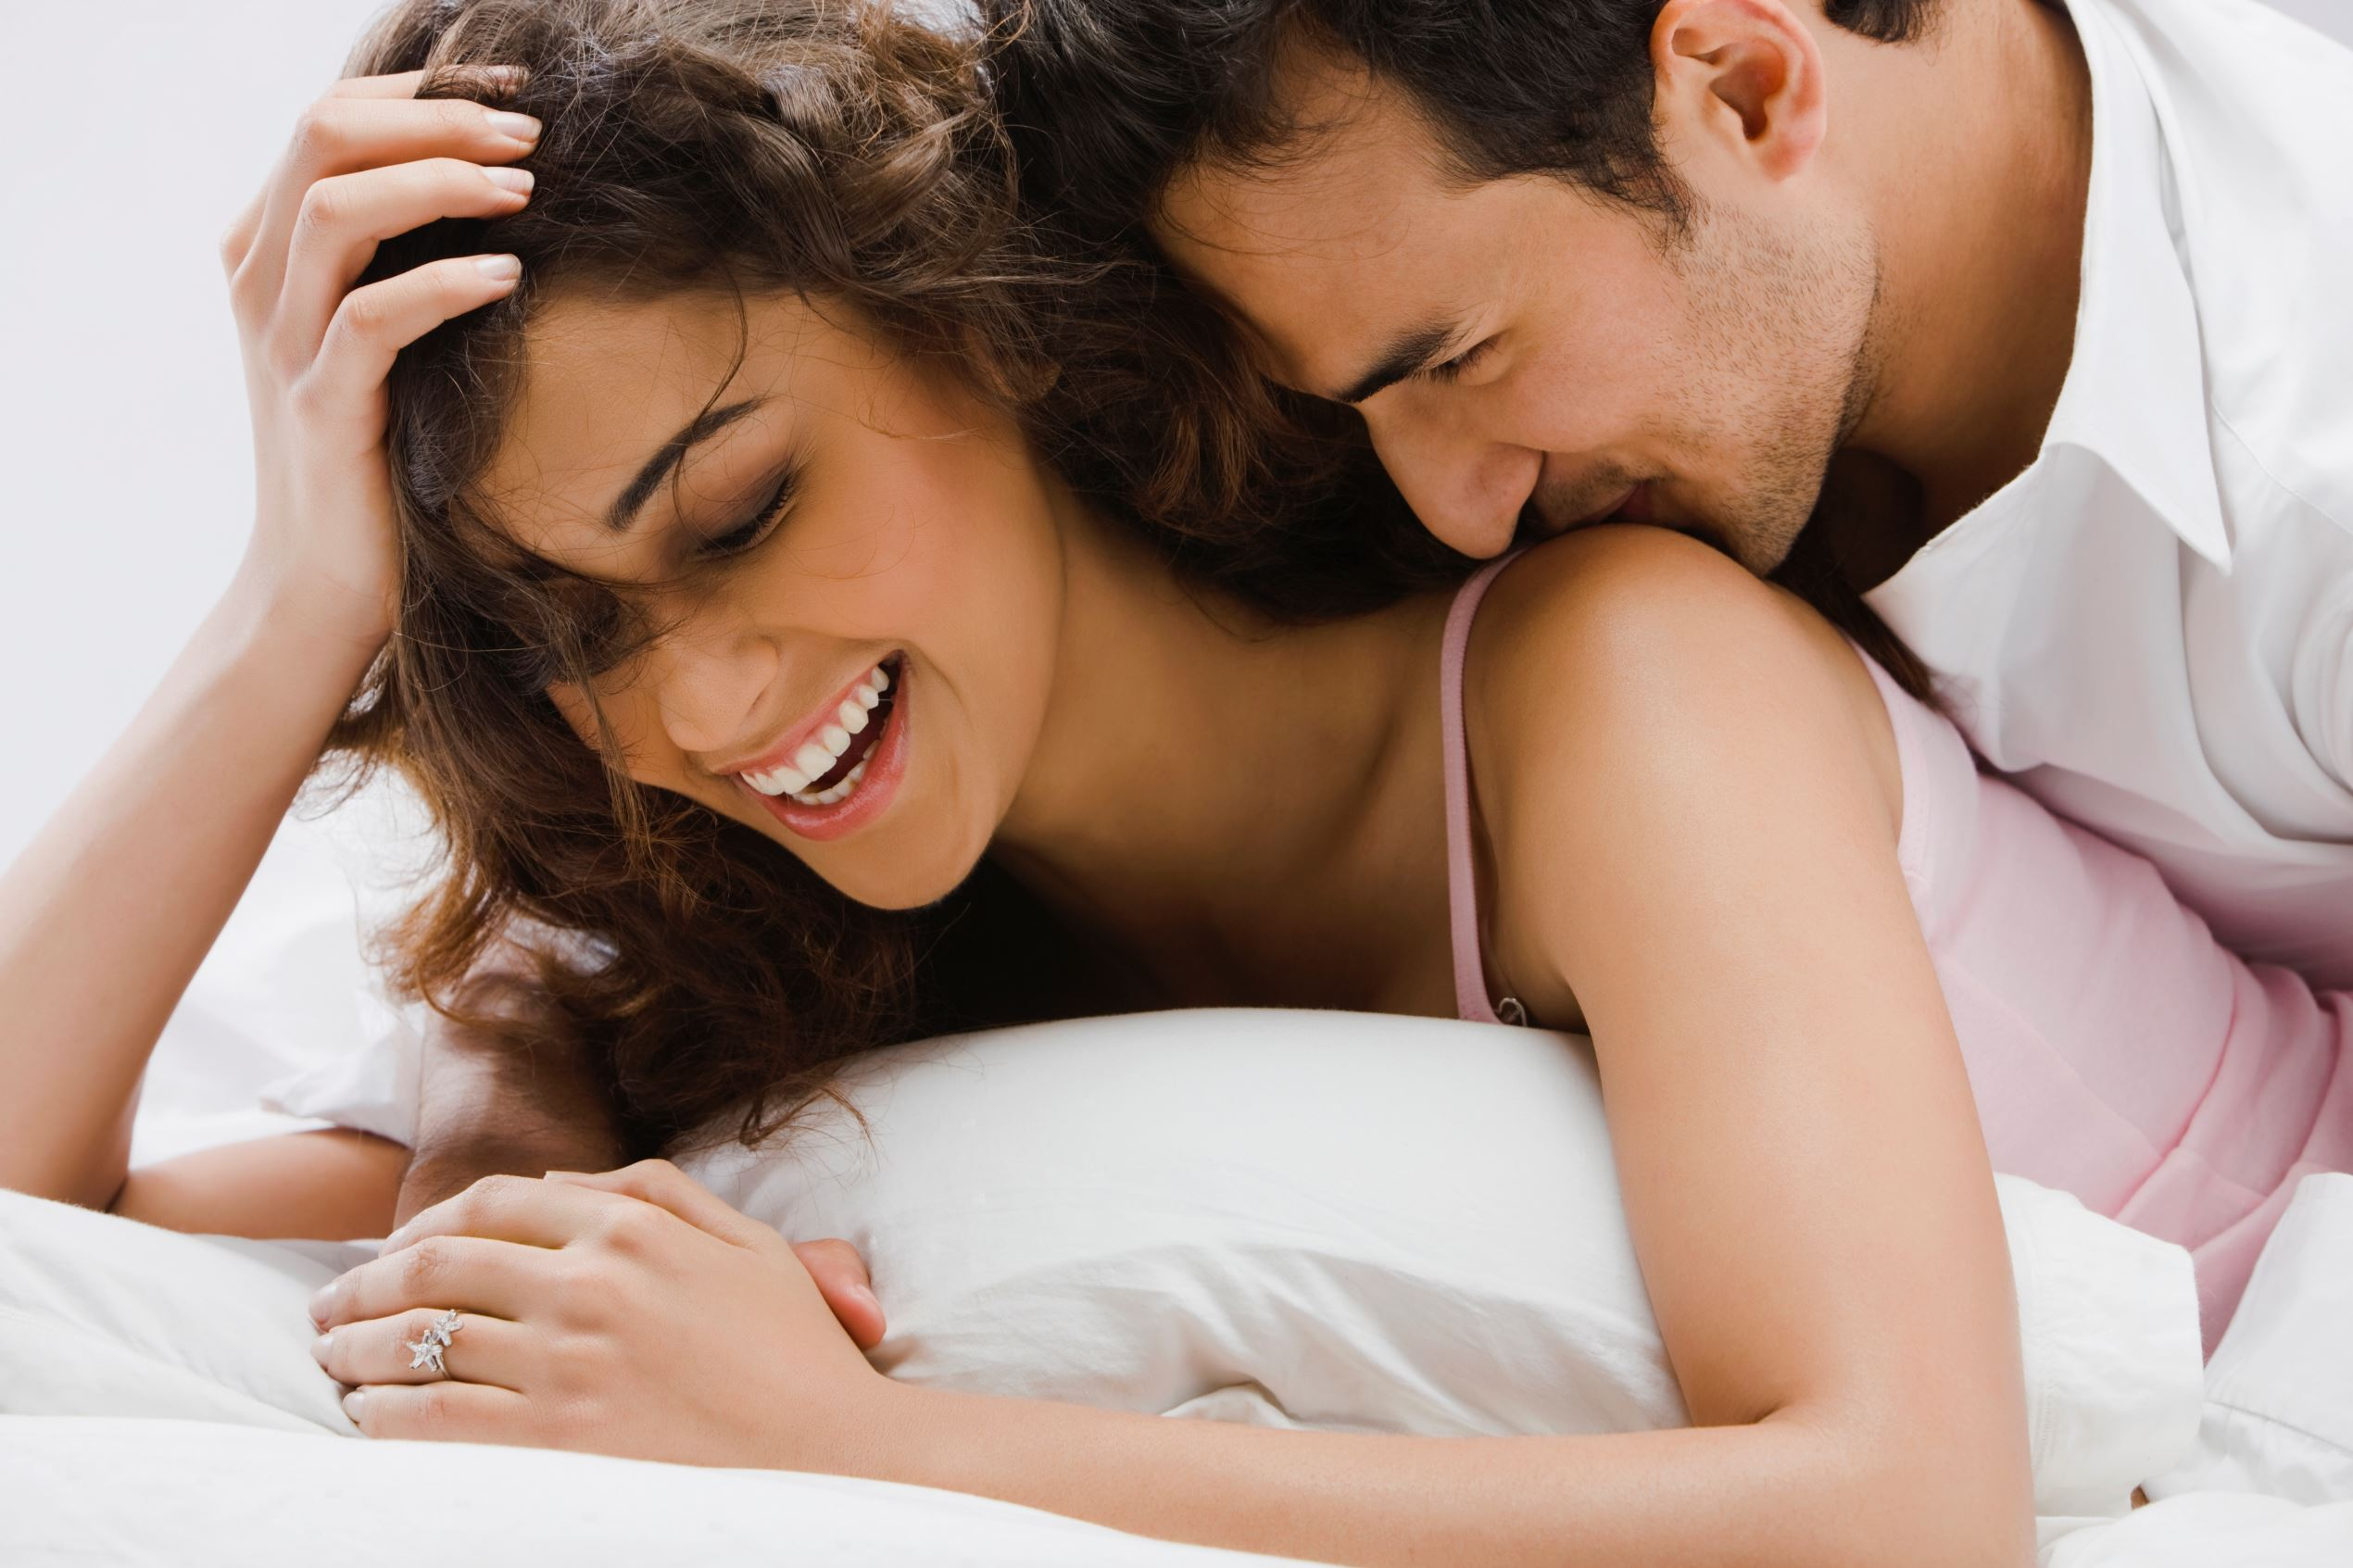 12 simple ways to improve your relationship instantly